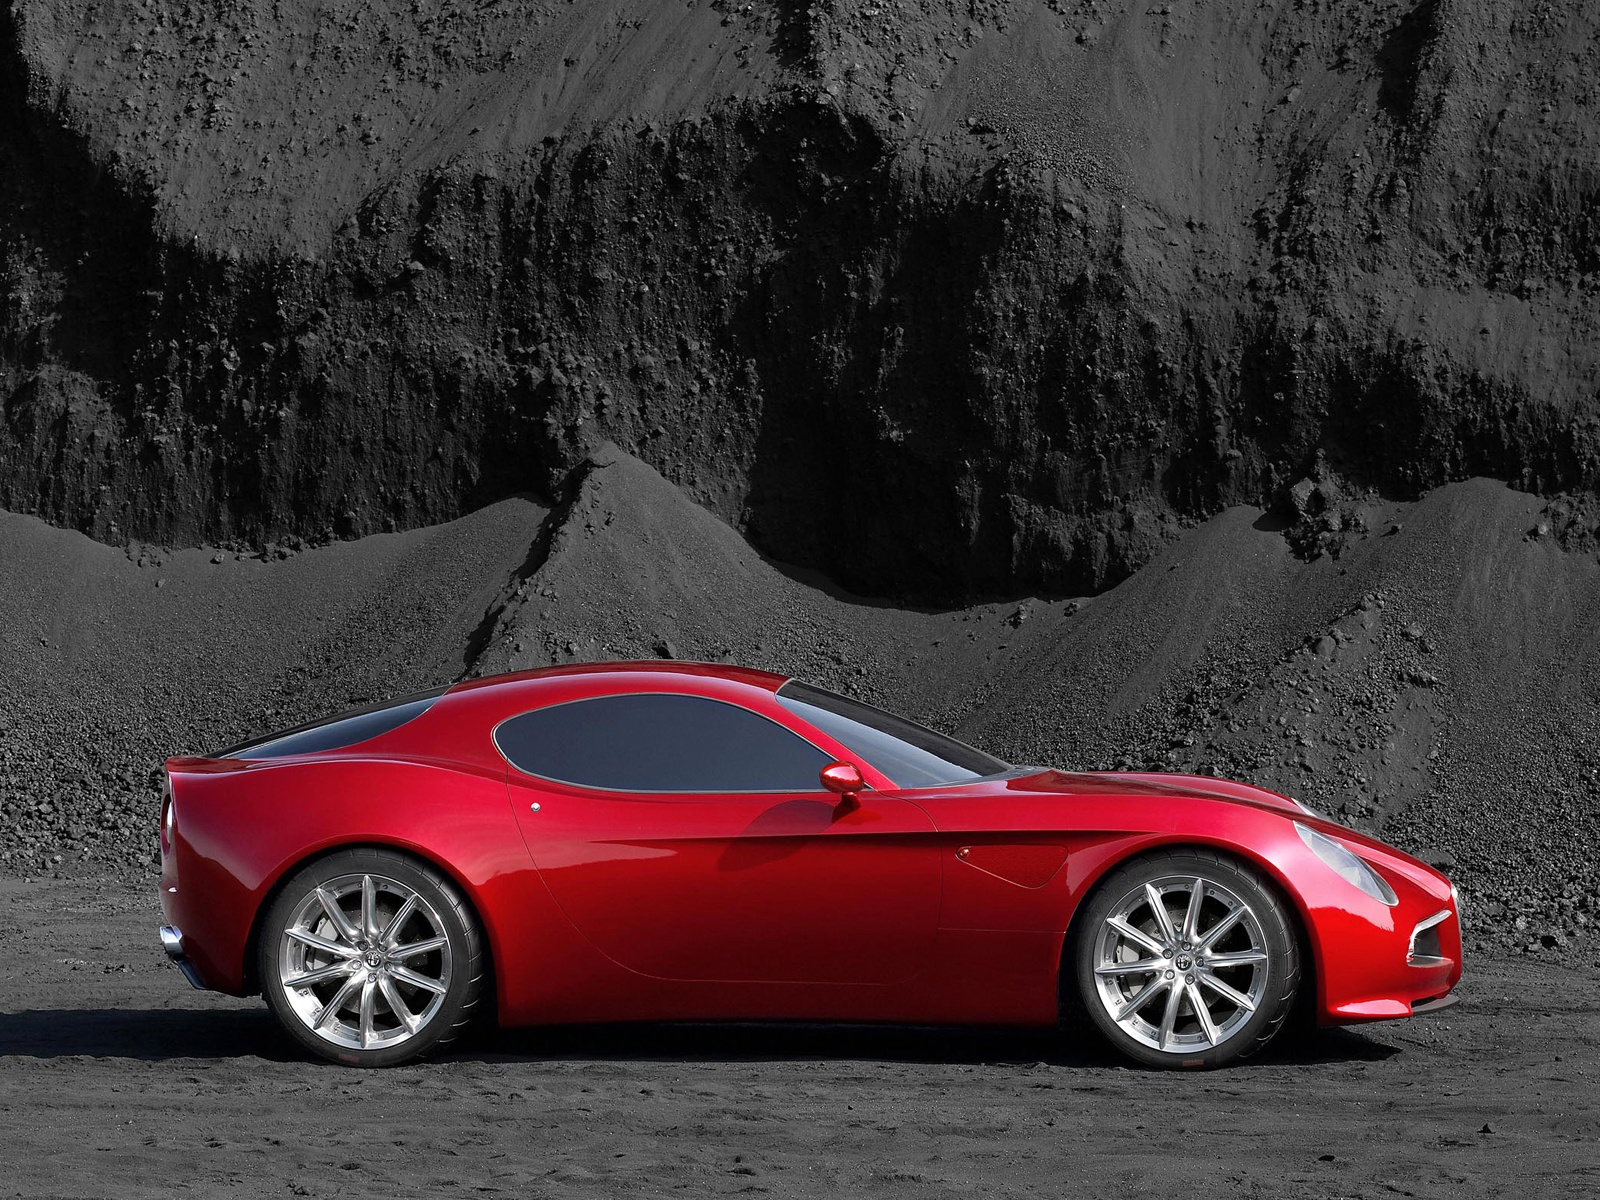 Alfa Romeo 8C Competizione photo High Resolution Image Wallpapers Backgrounds